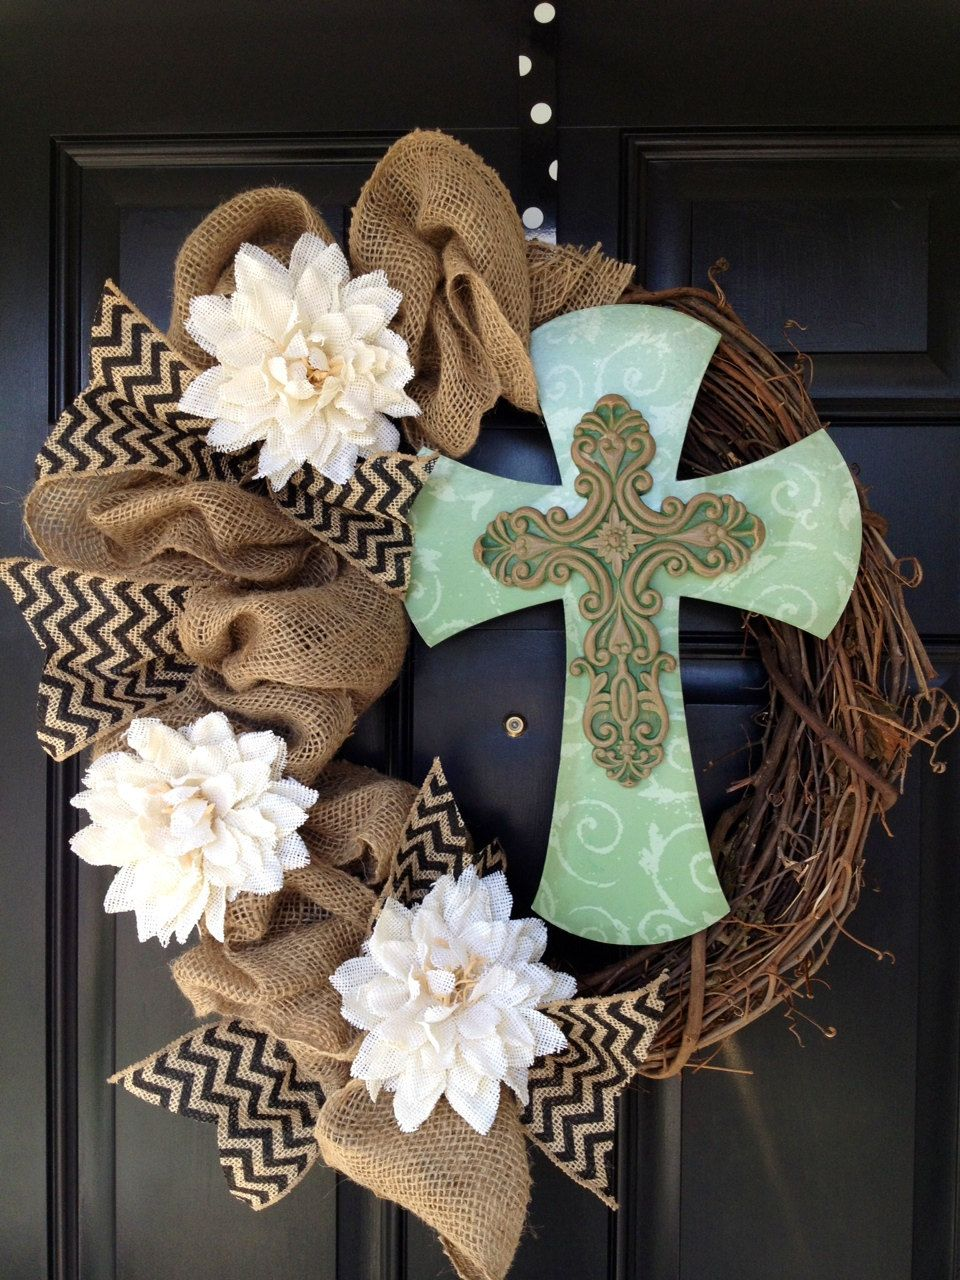 Home gt artificial florals gt holidays gt 60 quot poinsettia amp berry garland - 78 Best Images About Crafts On Pinterest Burlap Owl Burlap Flowers And Mesh Wreaths